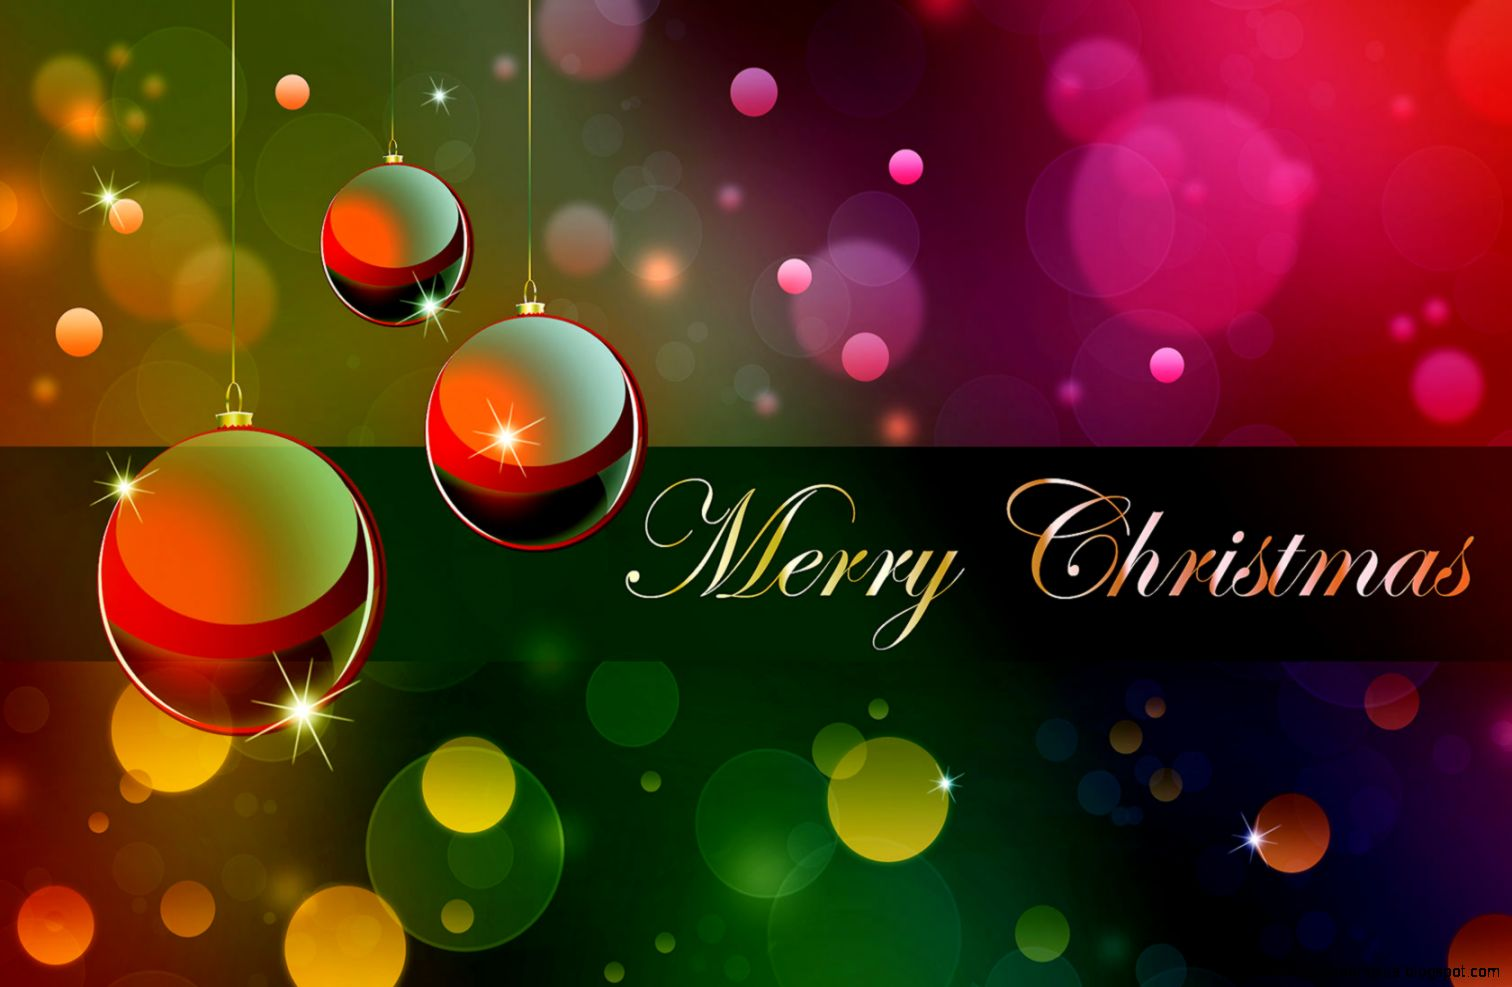 merry christmas wallpaper hd widescreen merry christmas wallpaper hd widescreen hd wallpapers plus